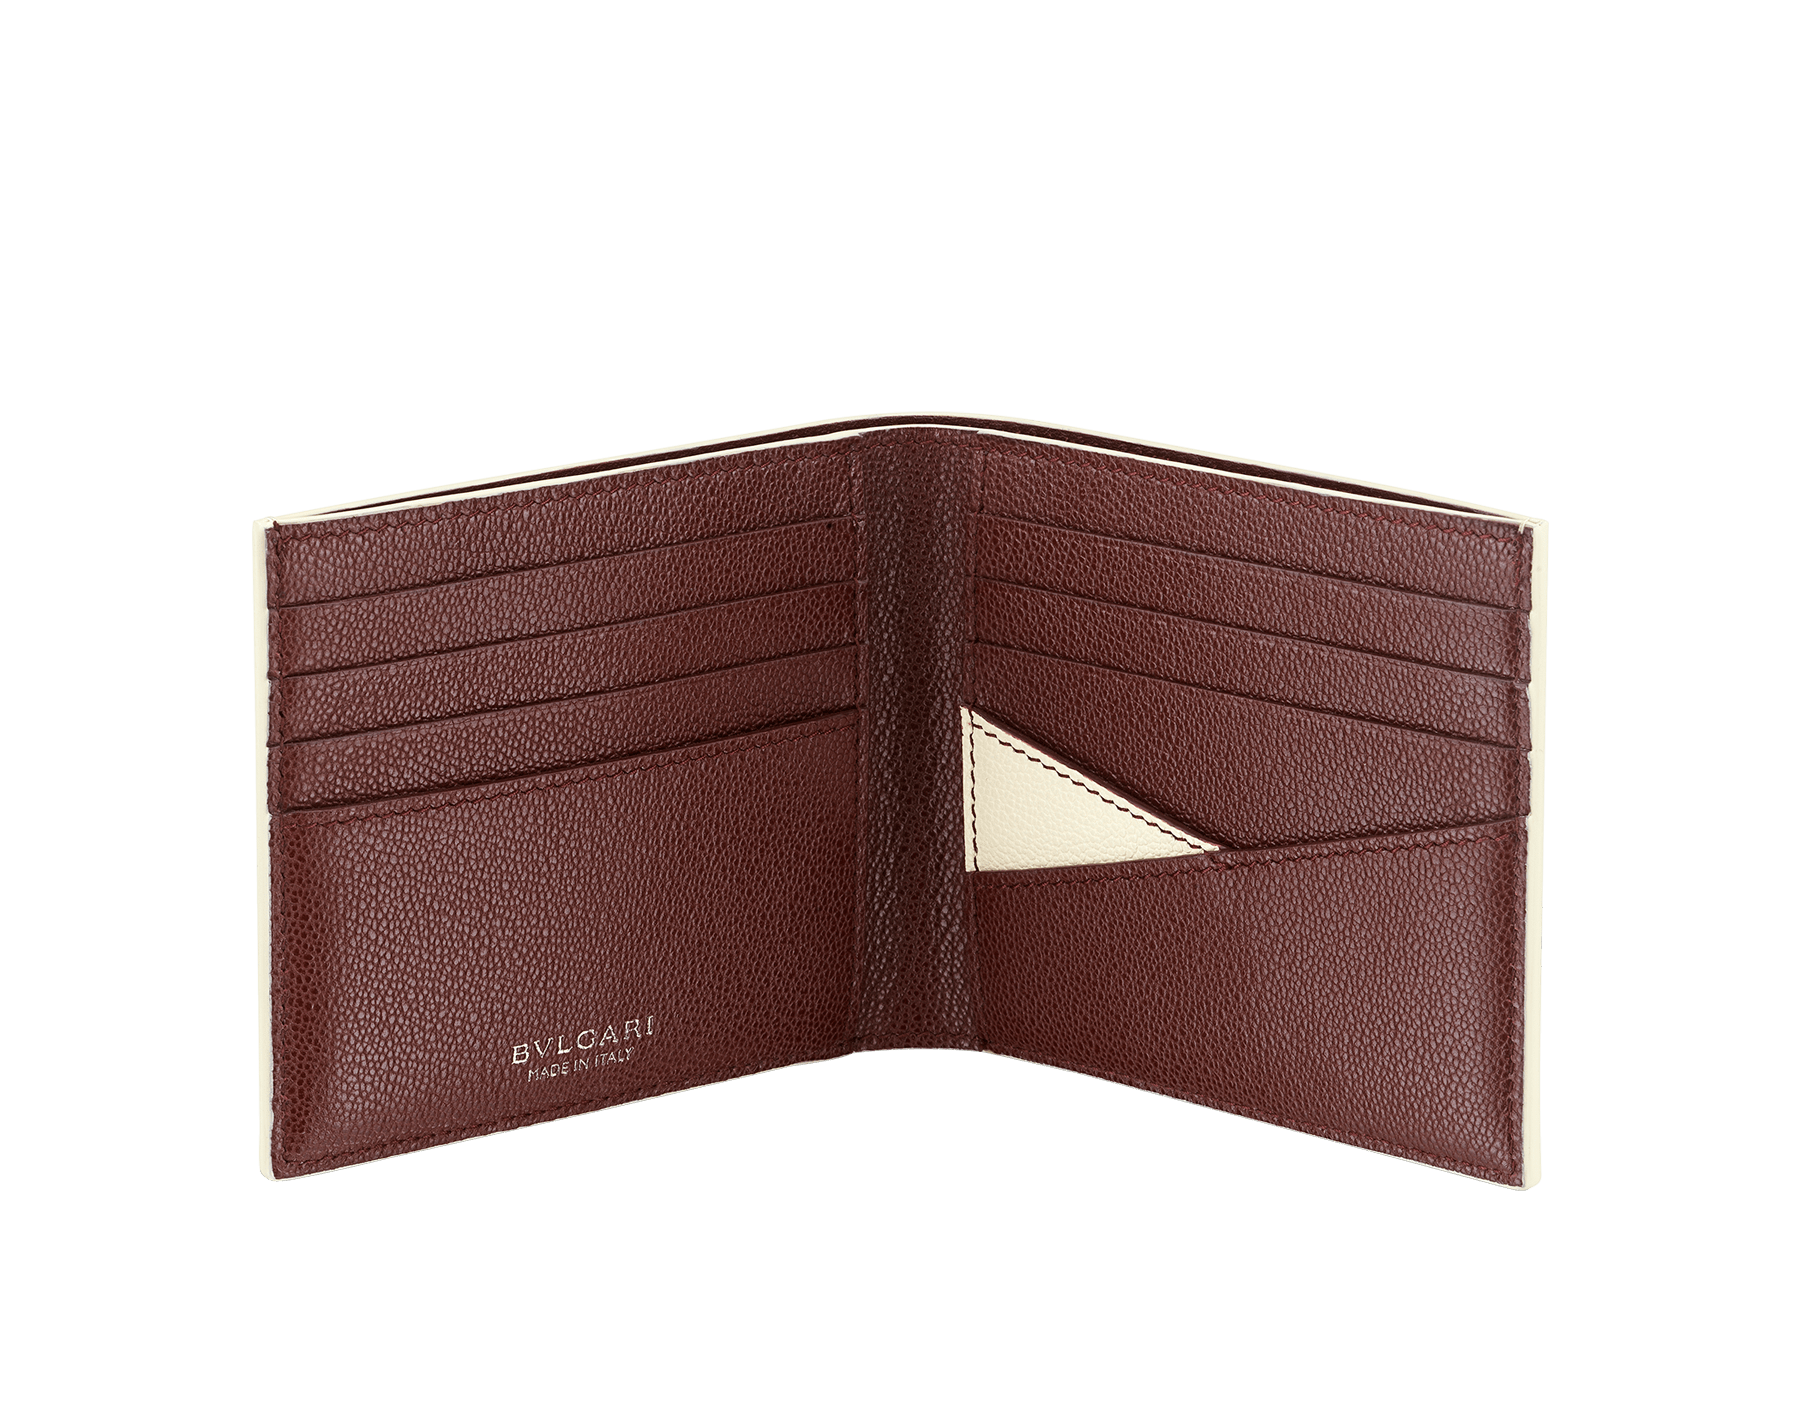 """""""BVLGARI BVLGARI"""" men's compact wallet in black and Forest Emerald green """"Urban"""" grain calf leather. Iconic logo embellishment in dark ruthenium-plated brass with black enamelling. BBM-WLT2FASYM image 2"""